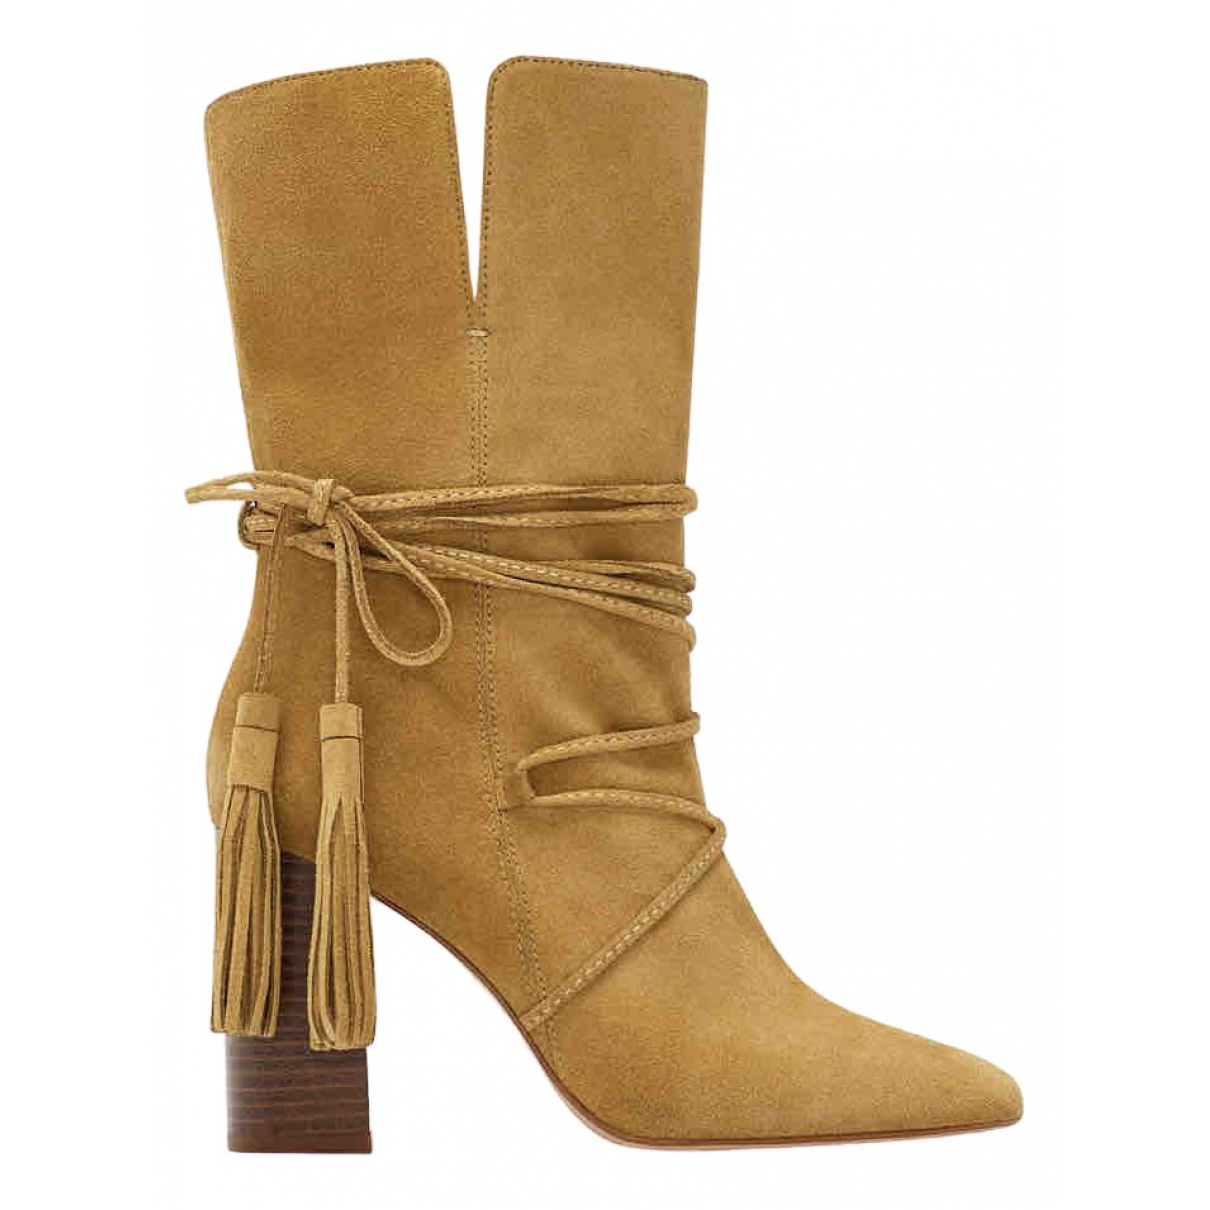 Zara \N Camel Suede Boots for Women 38 EU